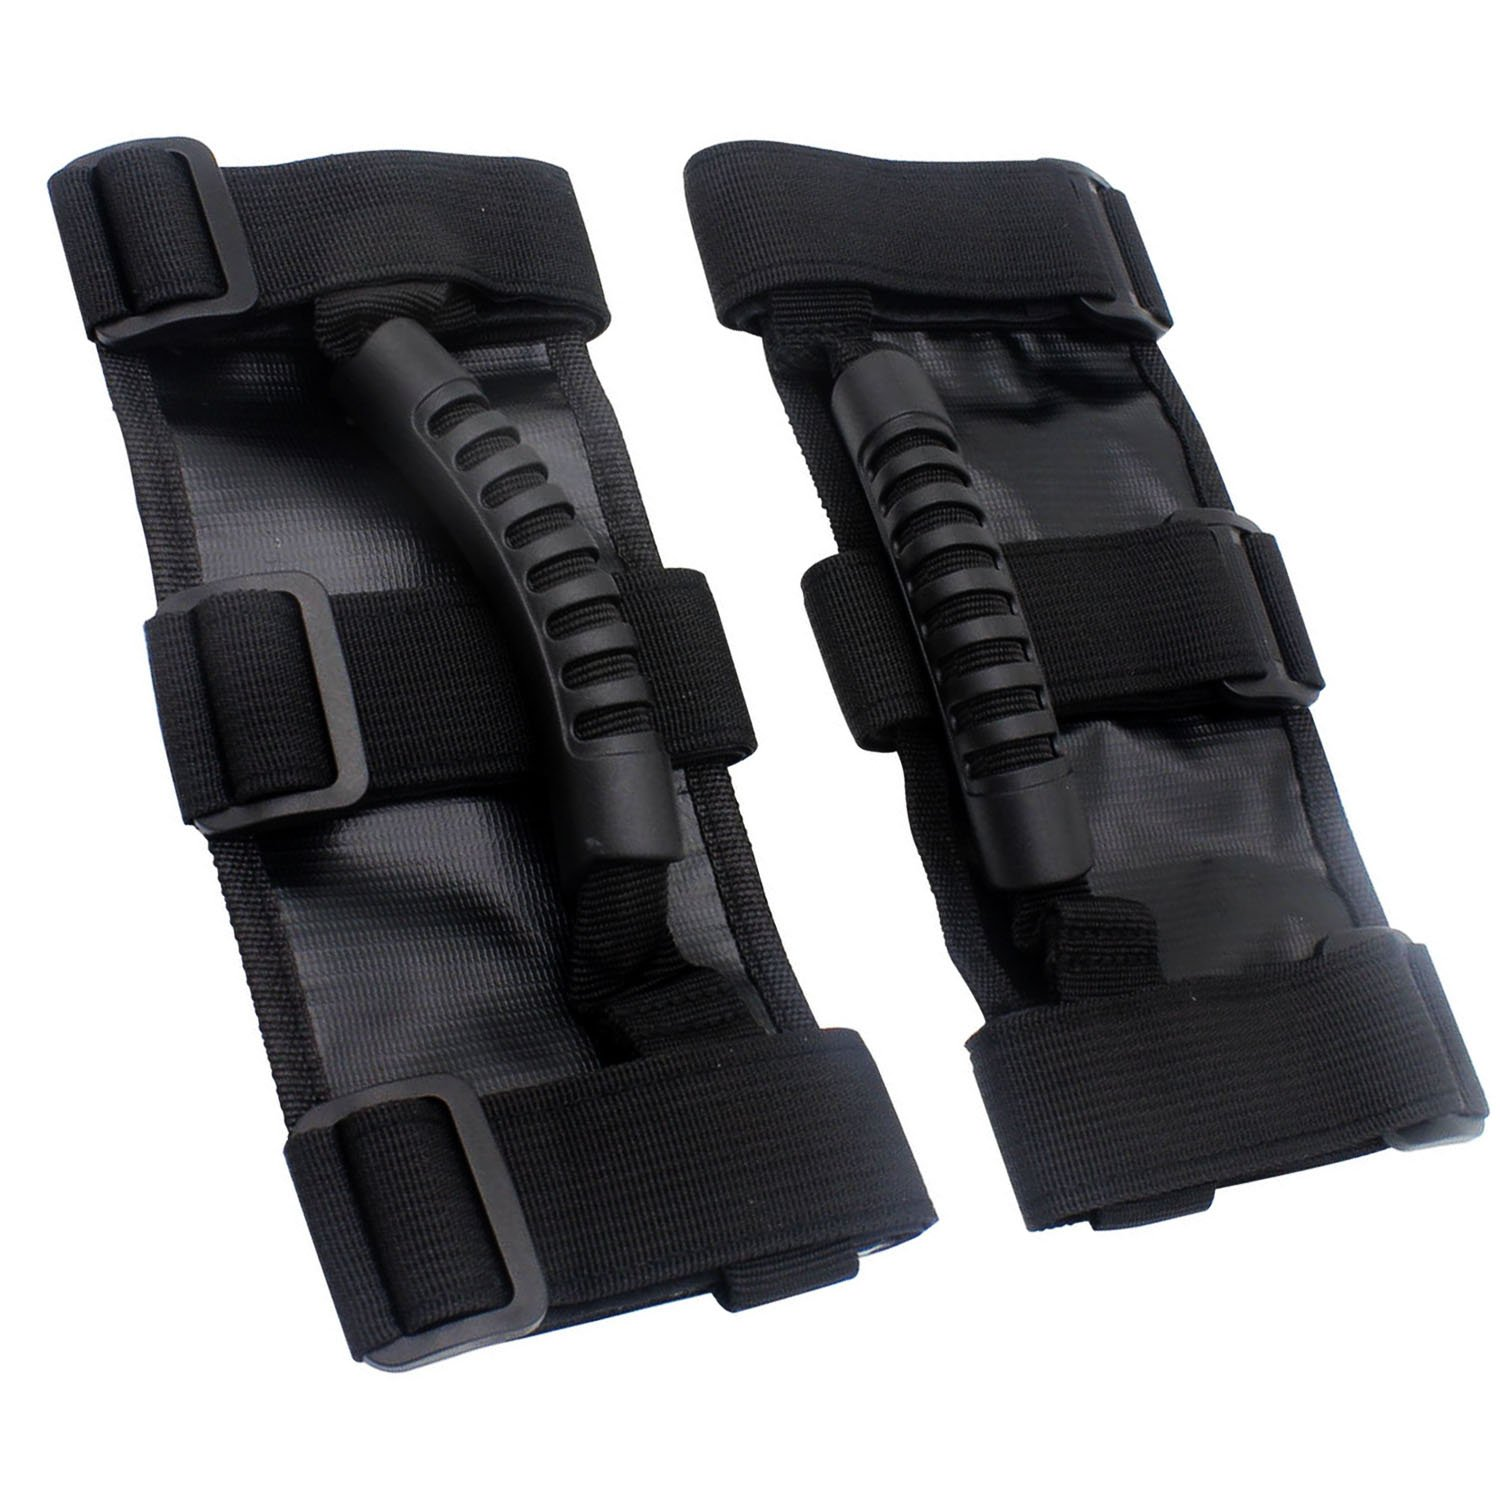 2pcs in 1pack Grab Handles,Heavy Duty Unlimited Roll Bar Grab Handles for Off-Road Enthusiasms